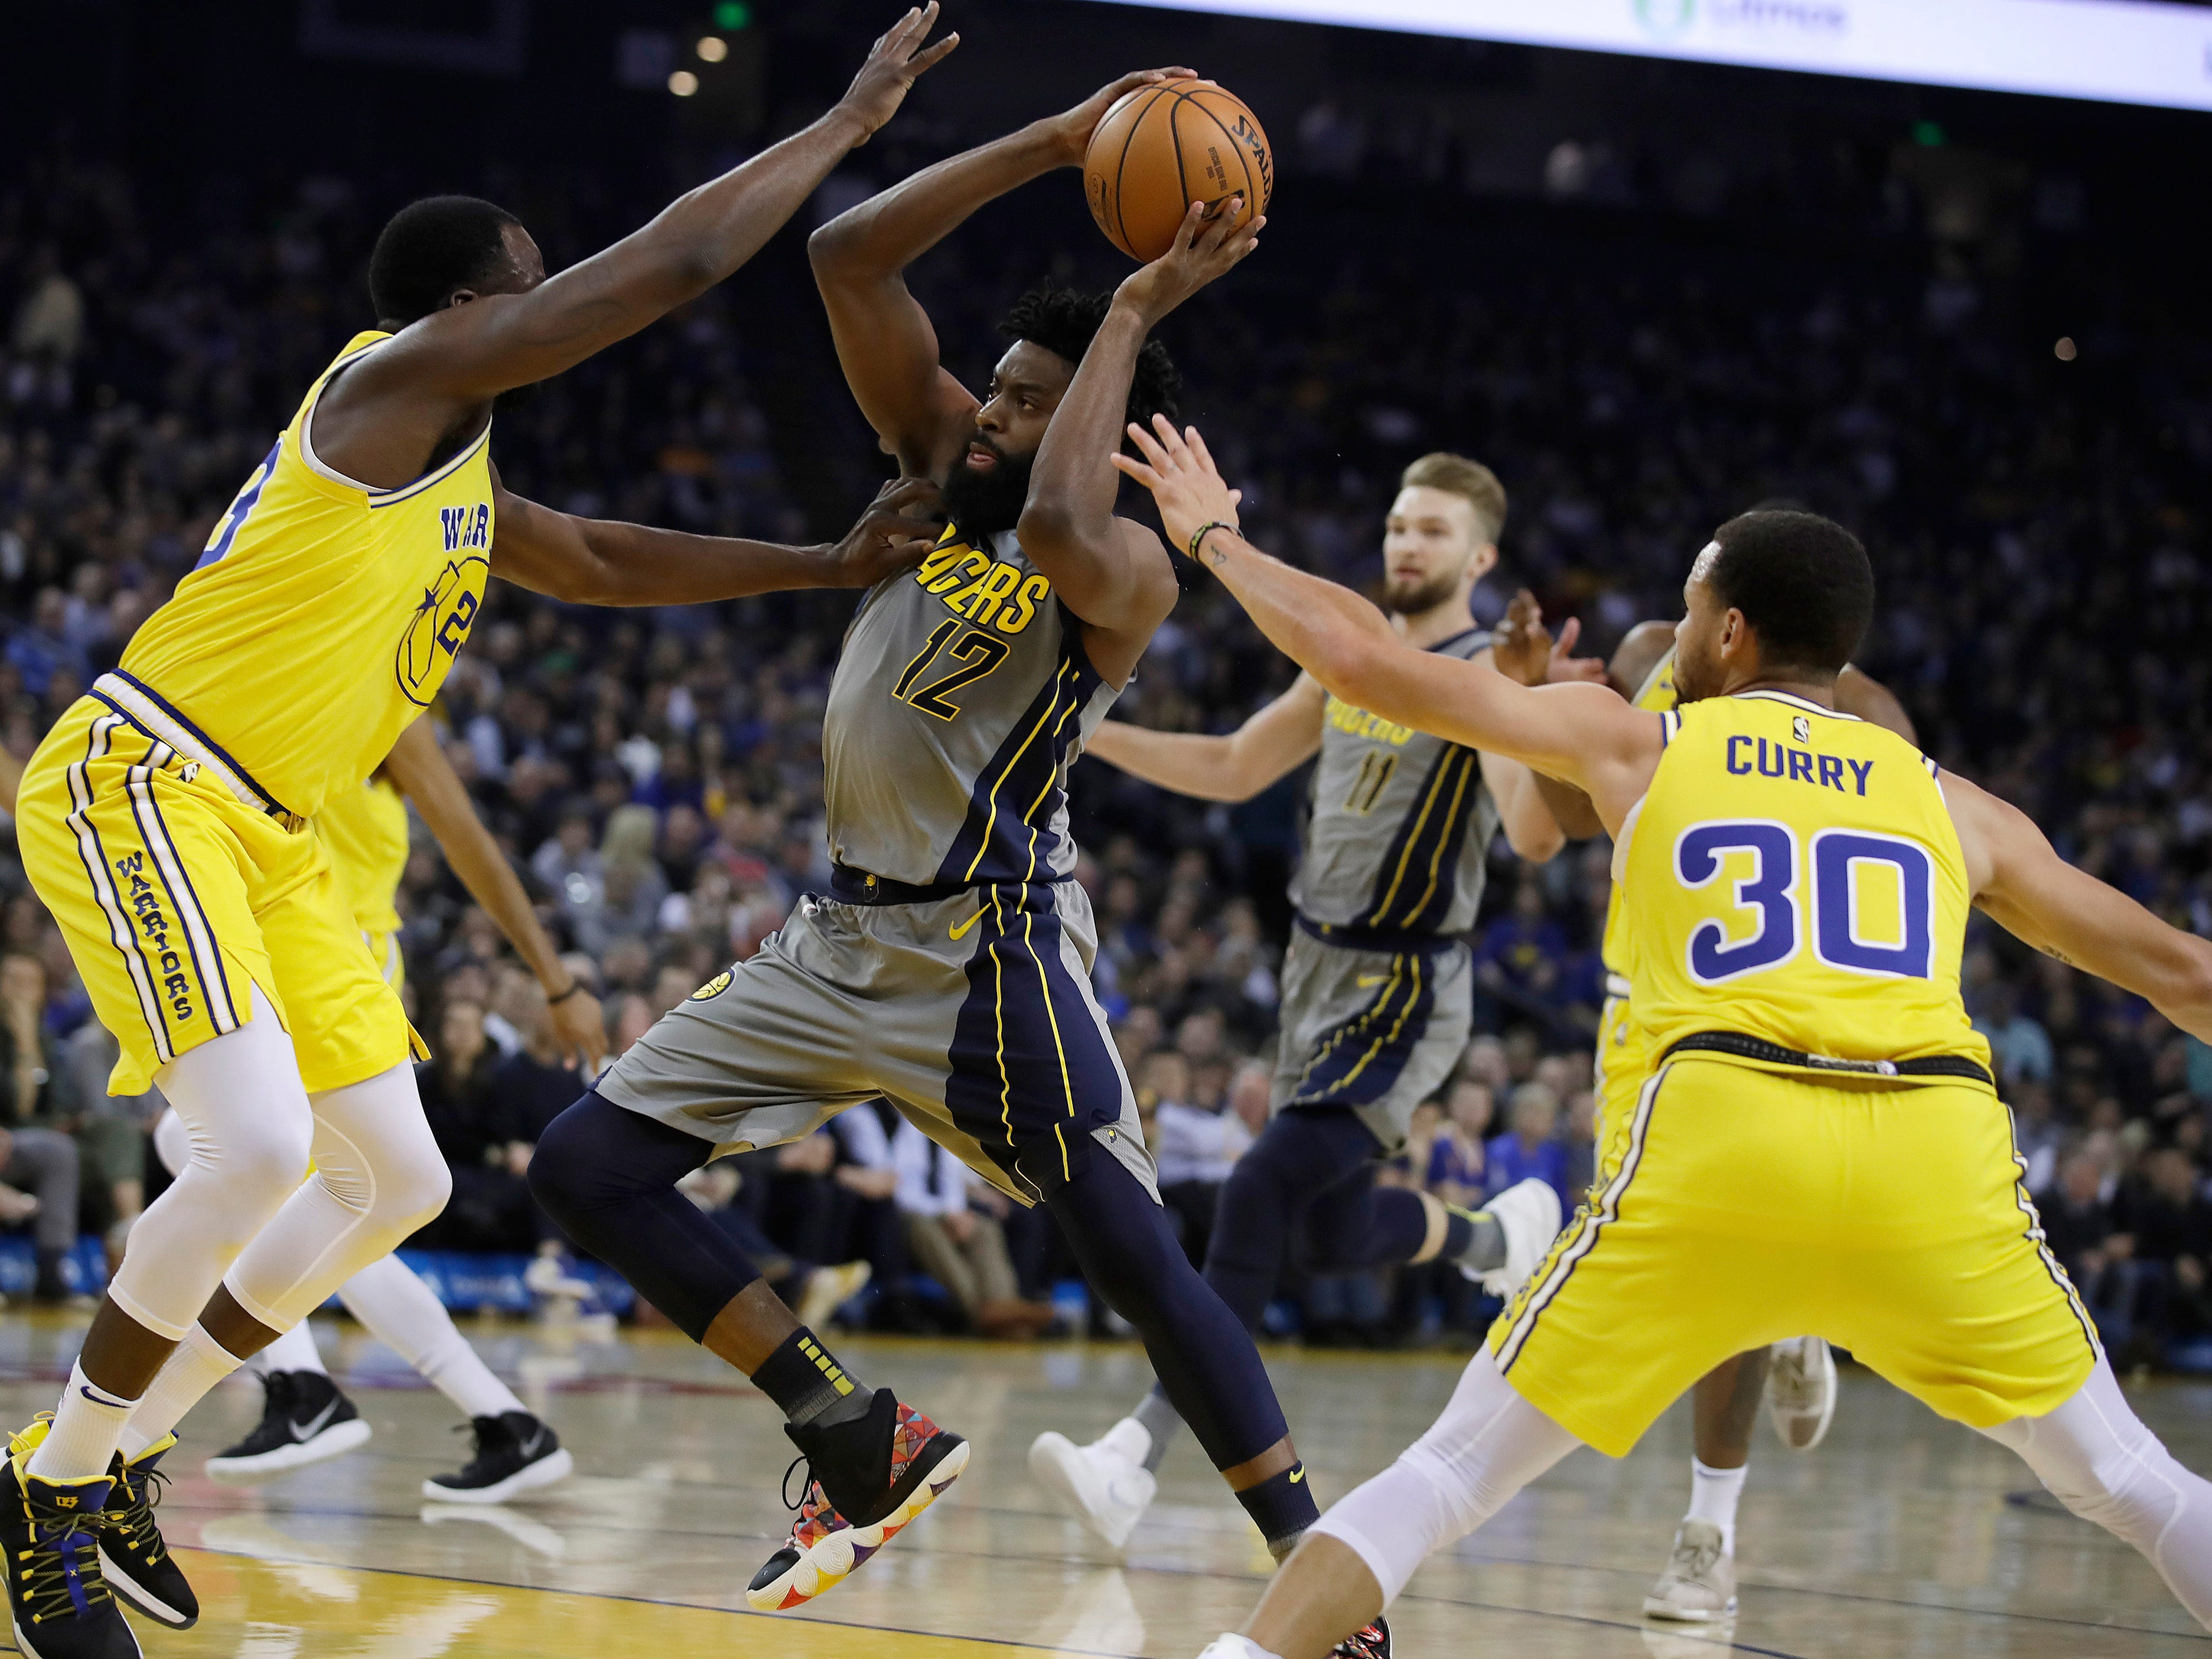 Indiana Pacers' Tyreke Evans, center, drives the ball between Golden State Warriors' Draymond Green, left, and Stephen Curry (30) during the first half of an NBA basketball game Thursday, March 21, 2019, in Oakland, Calif.